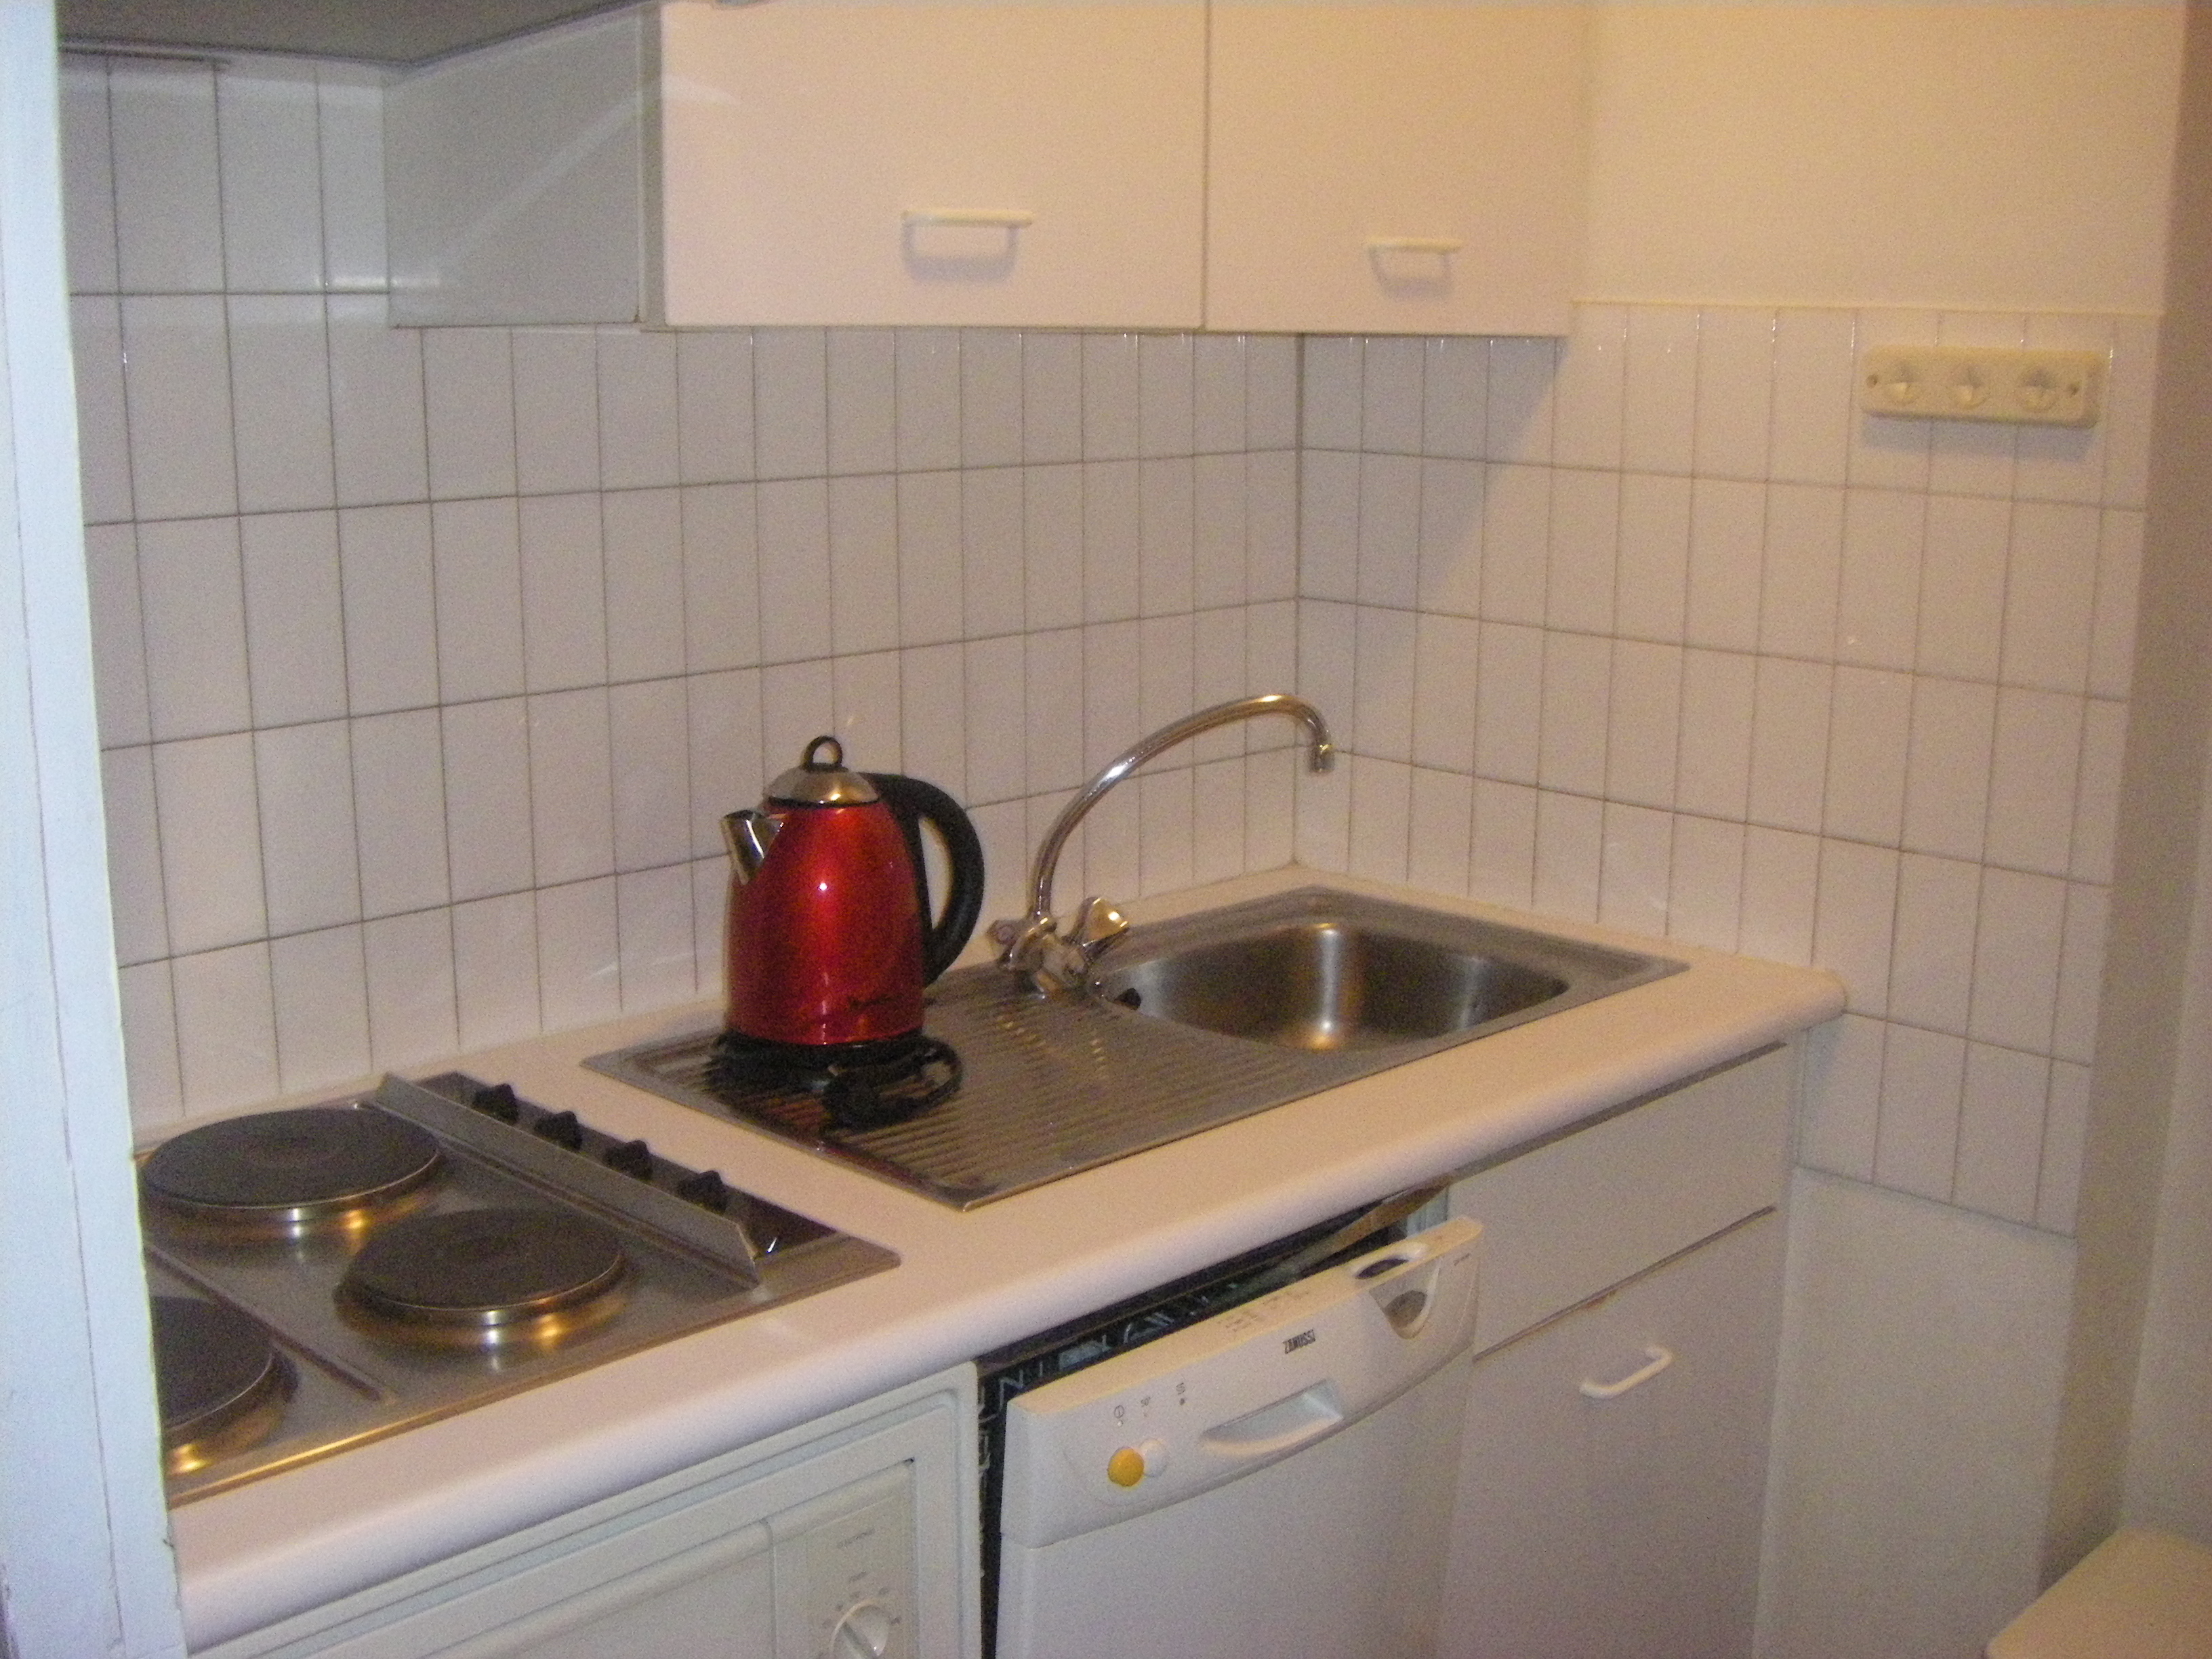 N 4 3 Rooms Appartment For 5 7 People With 2 Bedrooms Simple Beds 1 Living Room Big Kitchen Dining Bathroom